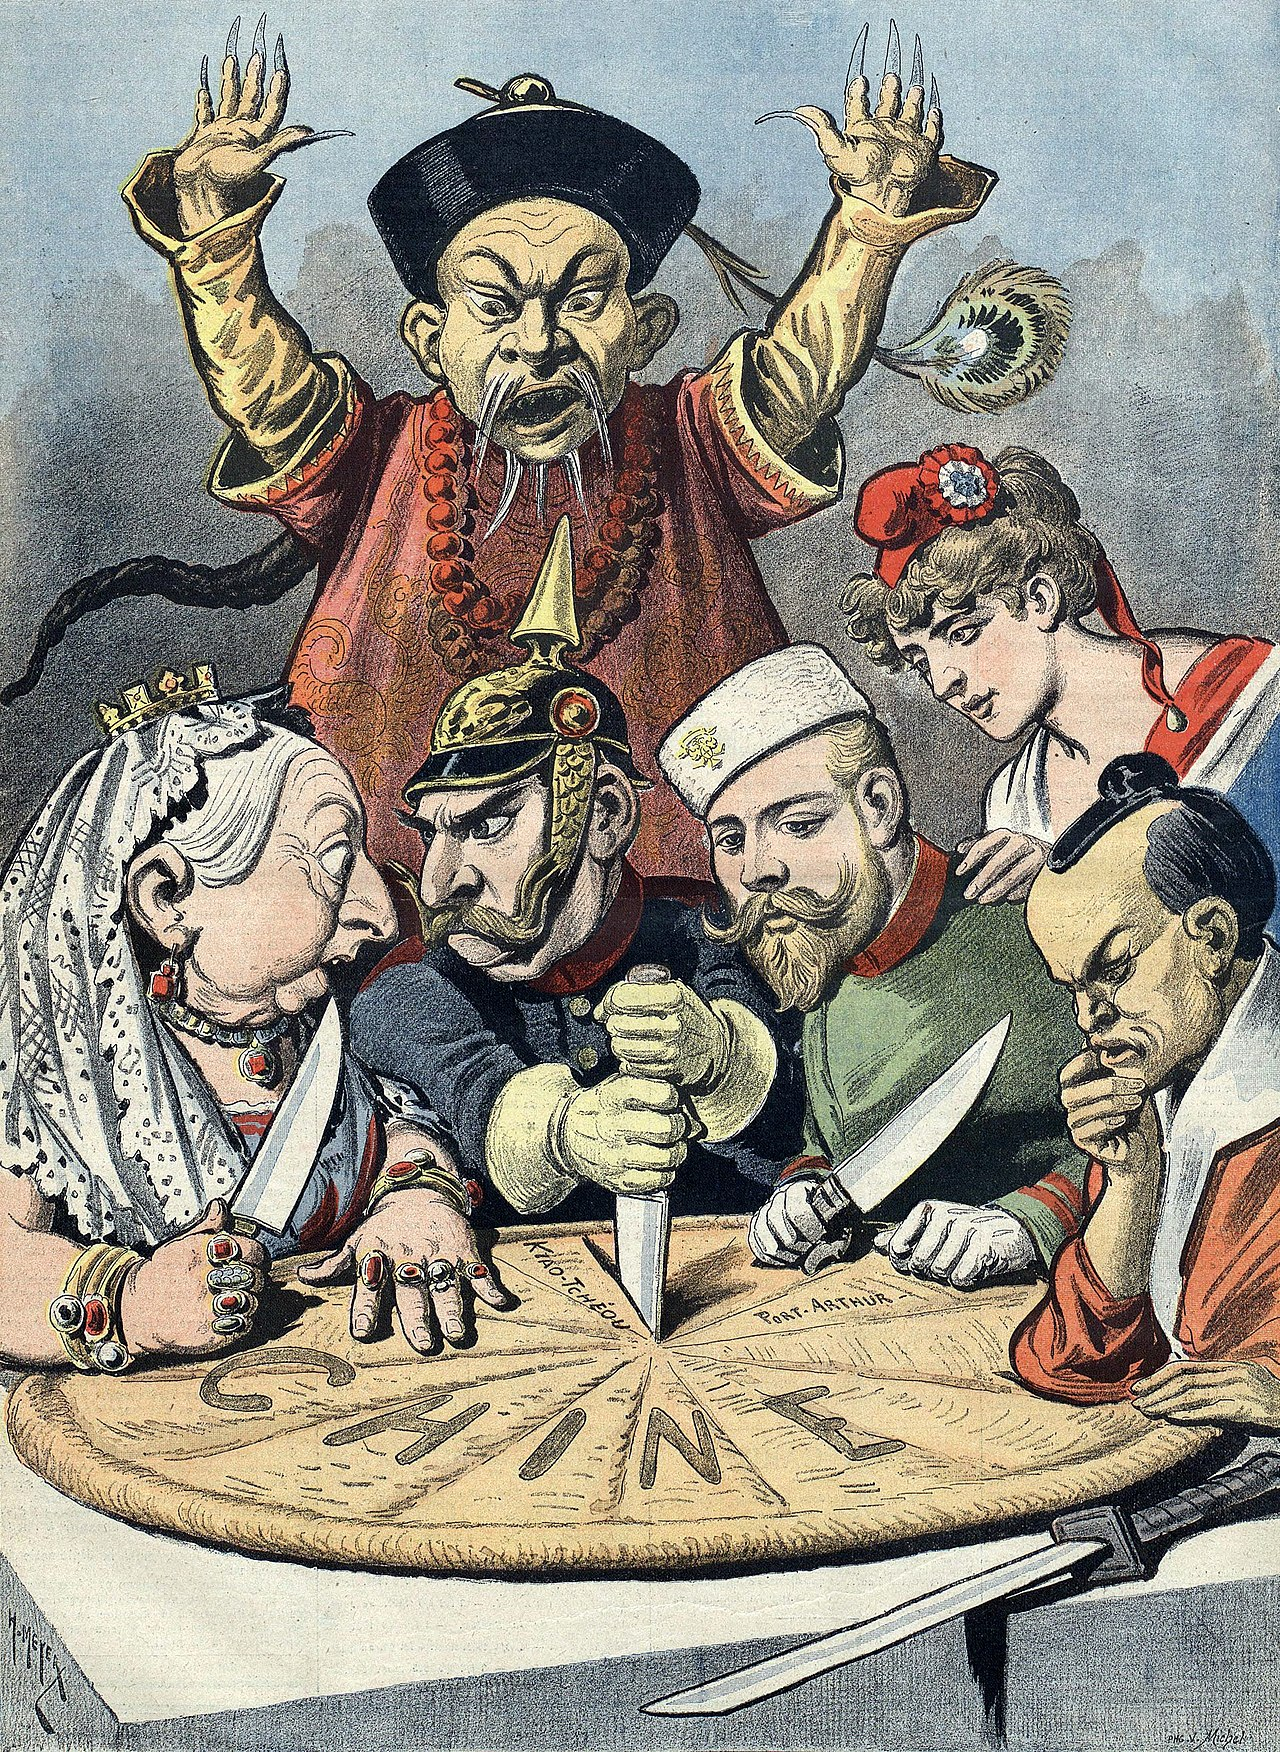 French political cartoon on China imperialism